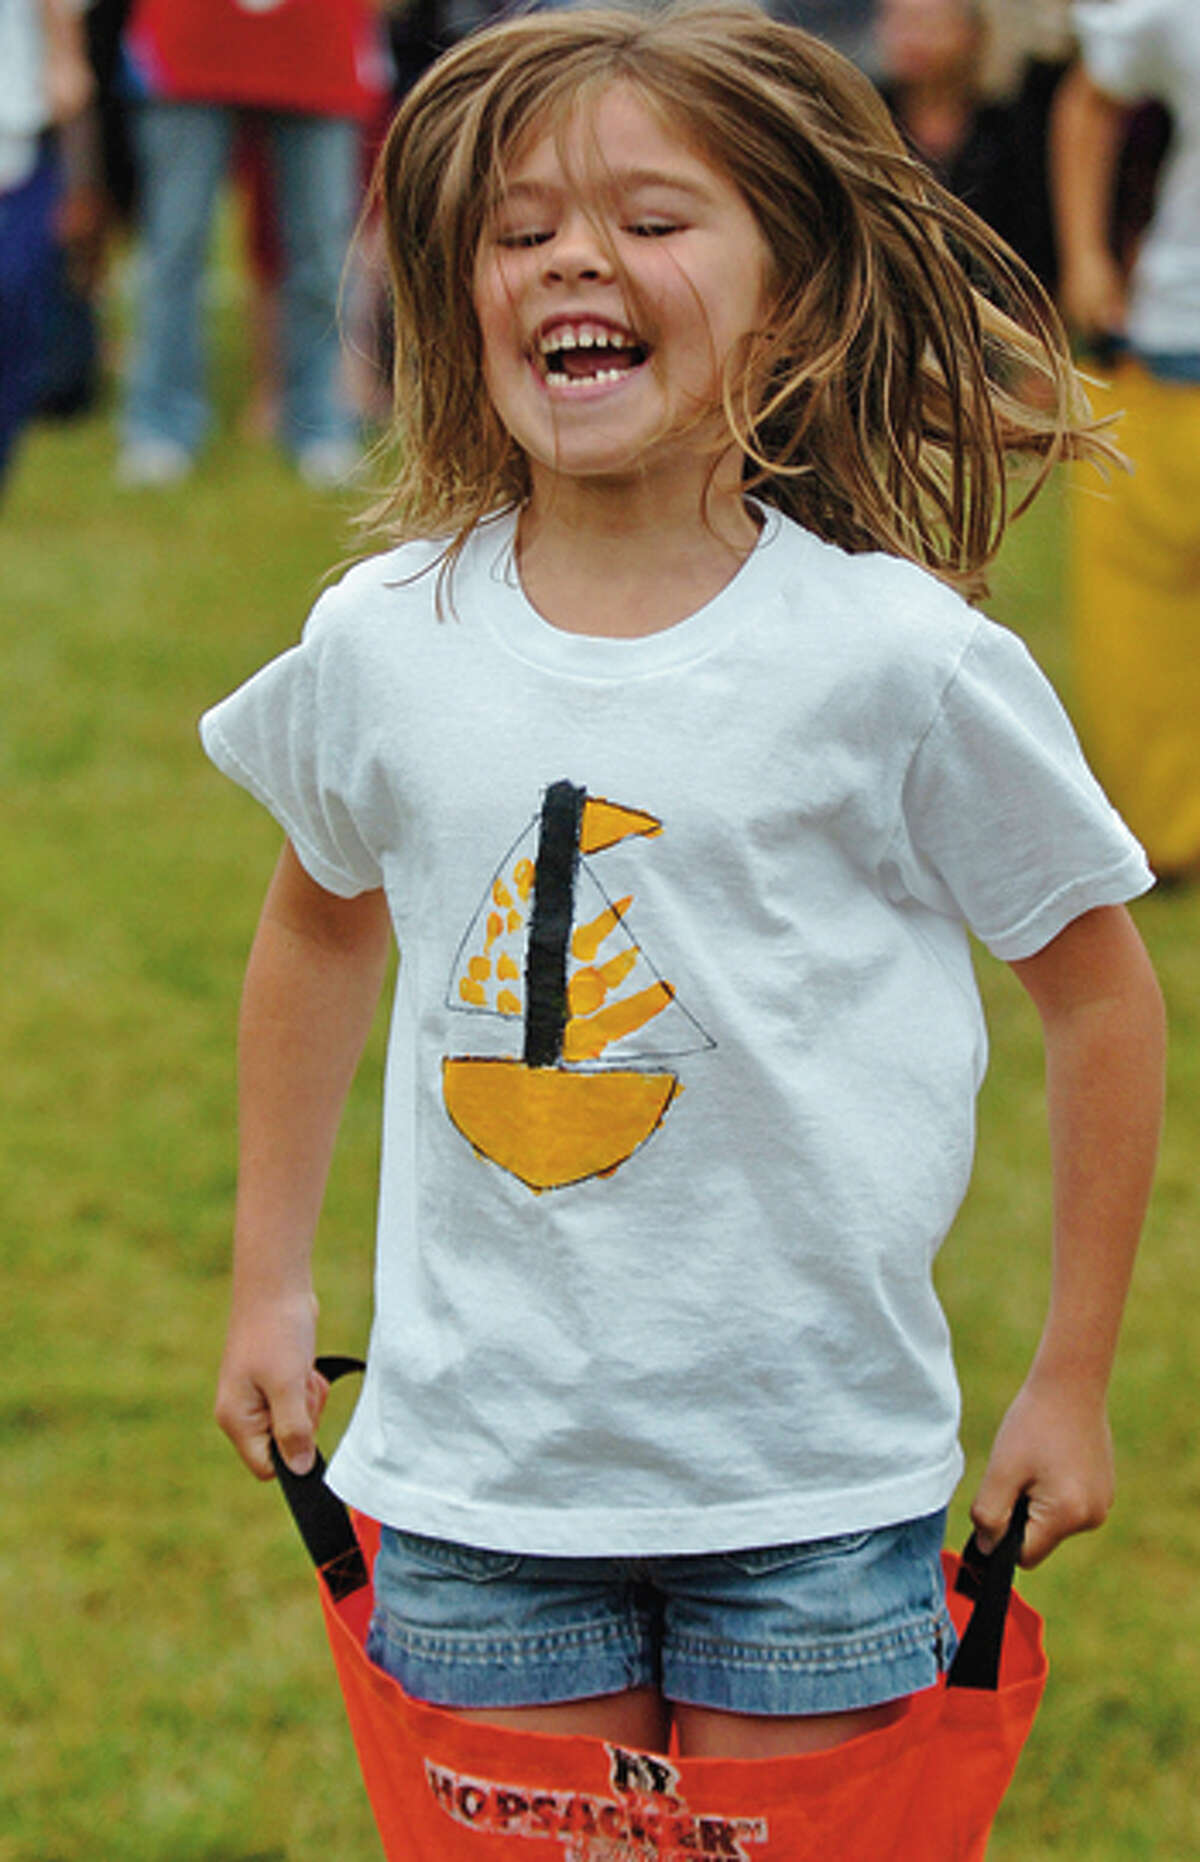 Miller Driscoll first grader Hannah Hemschot participates in the sack race during the school's field day Tuesday morning. Hour photo / Erik Trautmann